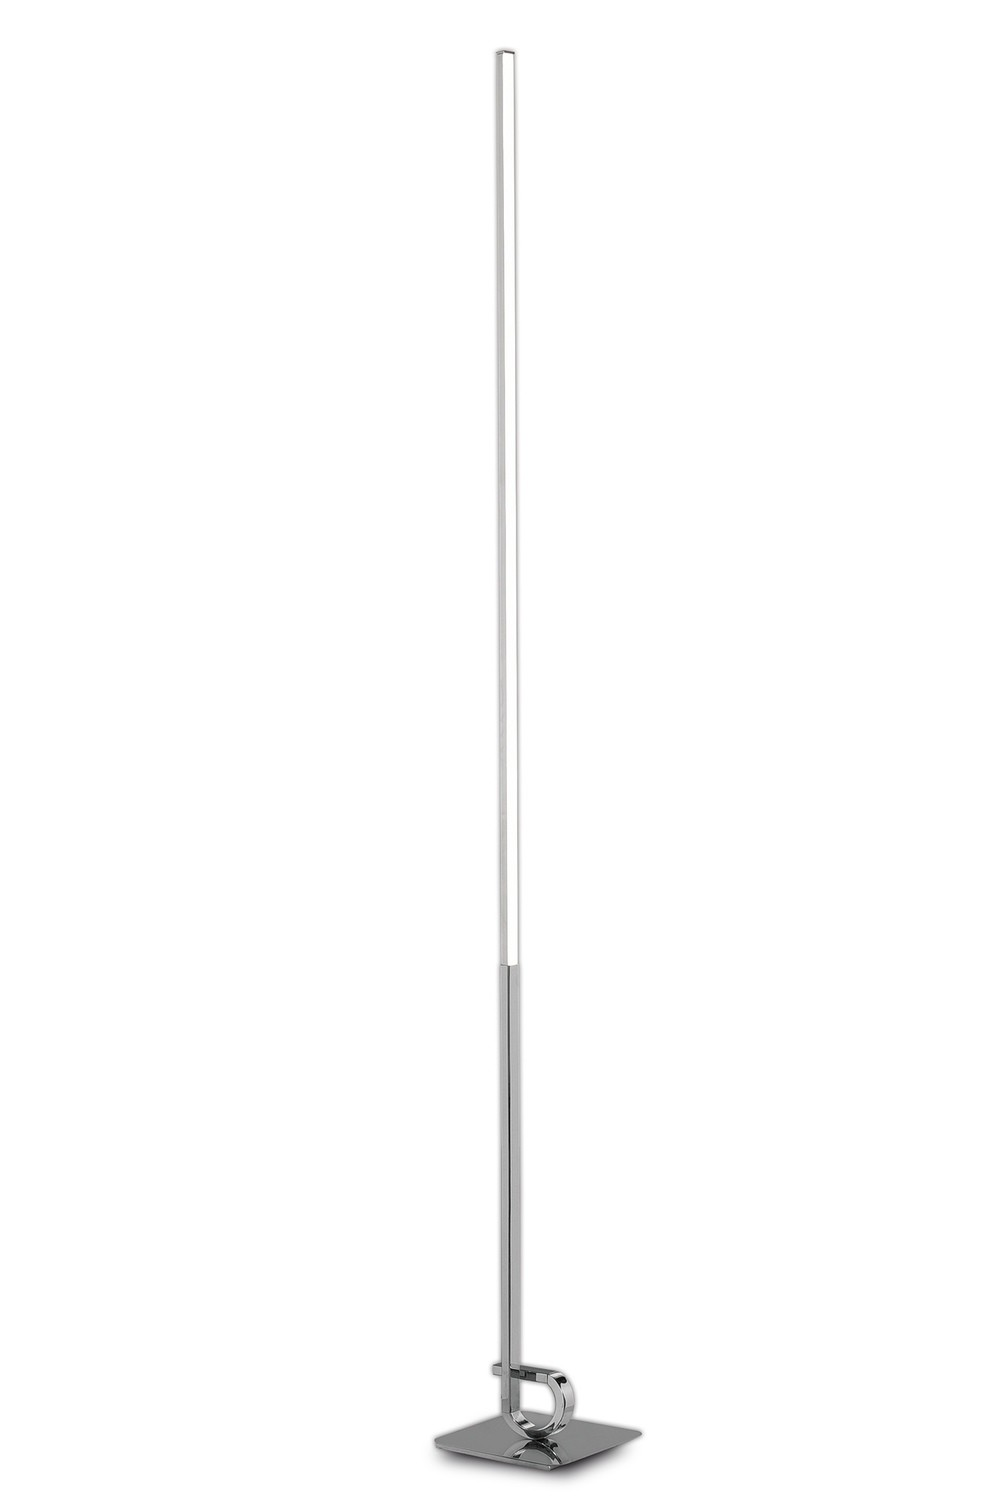 Cinto Floor Lamp 175cm, 20W LED, 3000K, 1600lm Dimmable, Polished Chrome